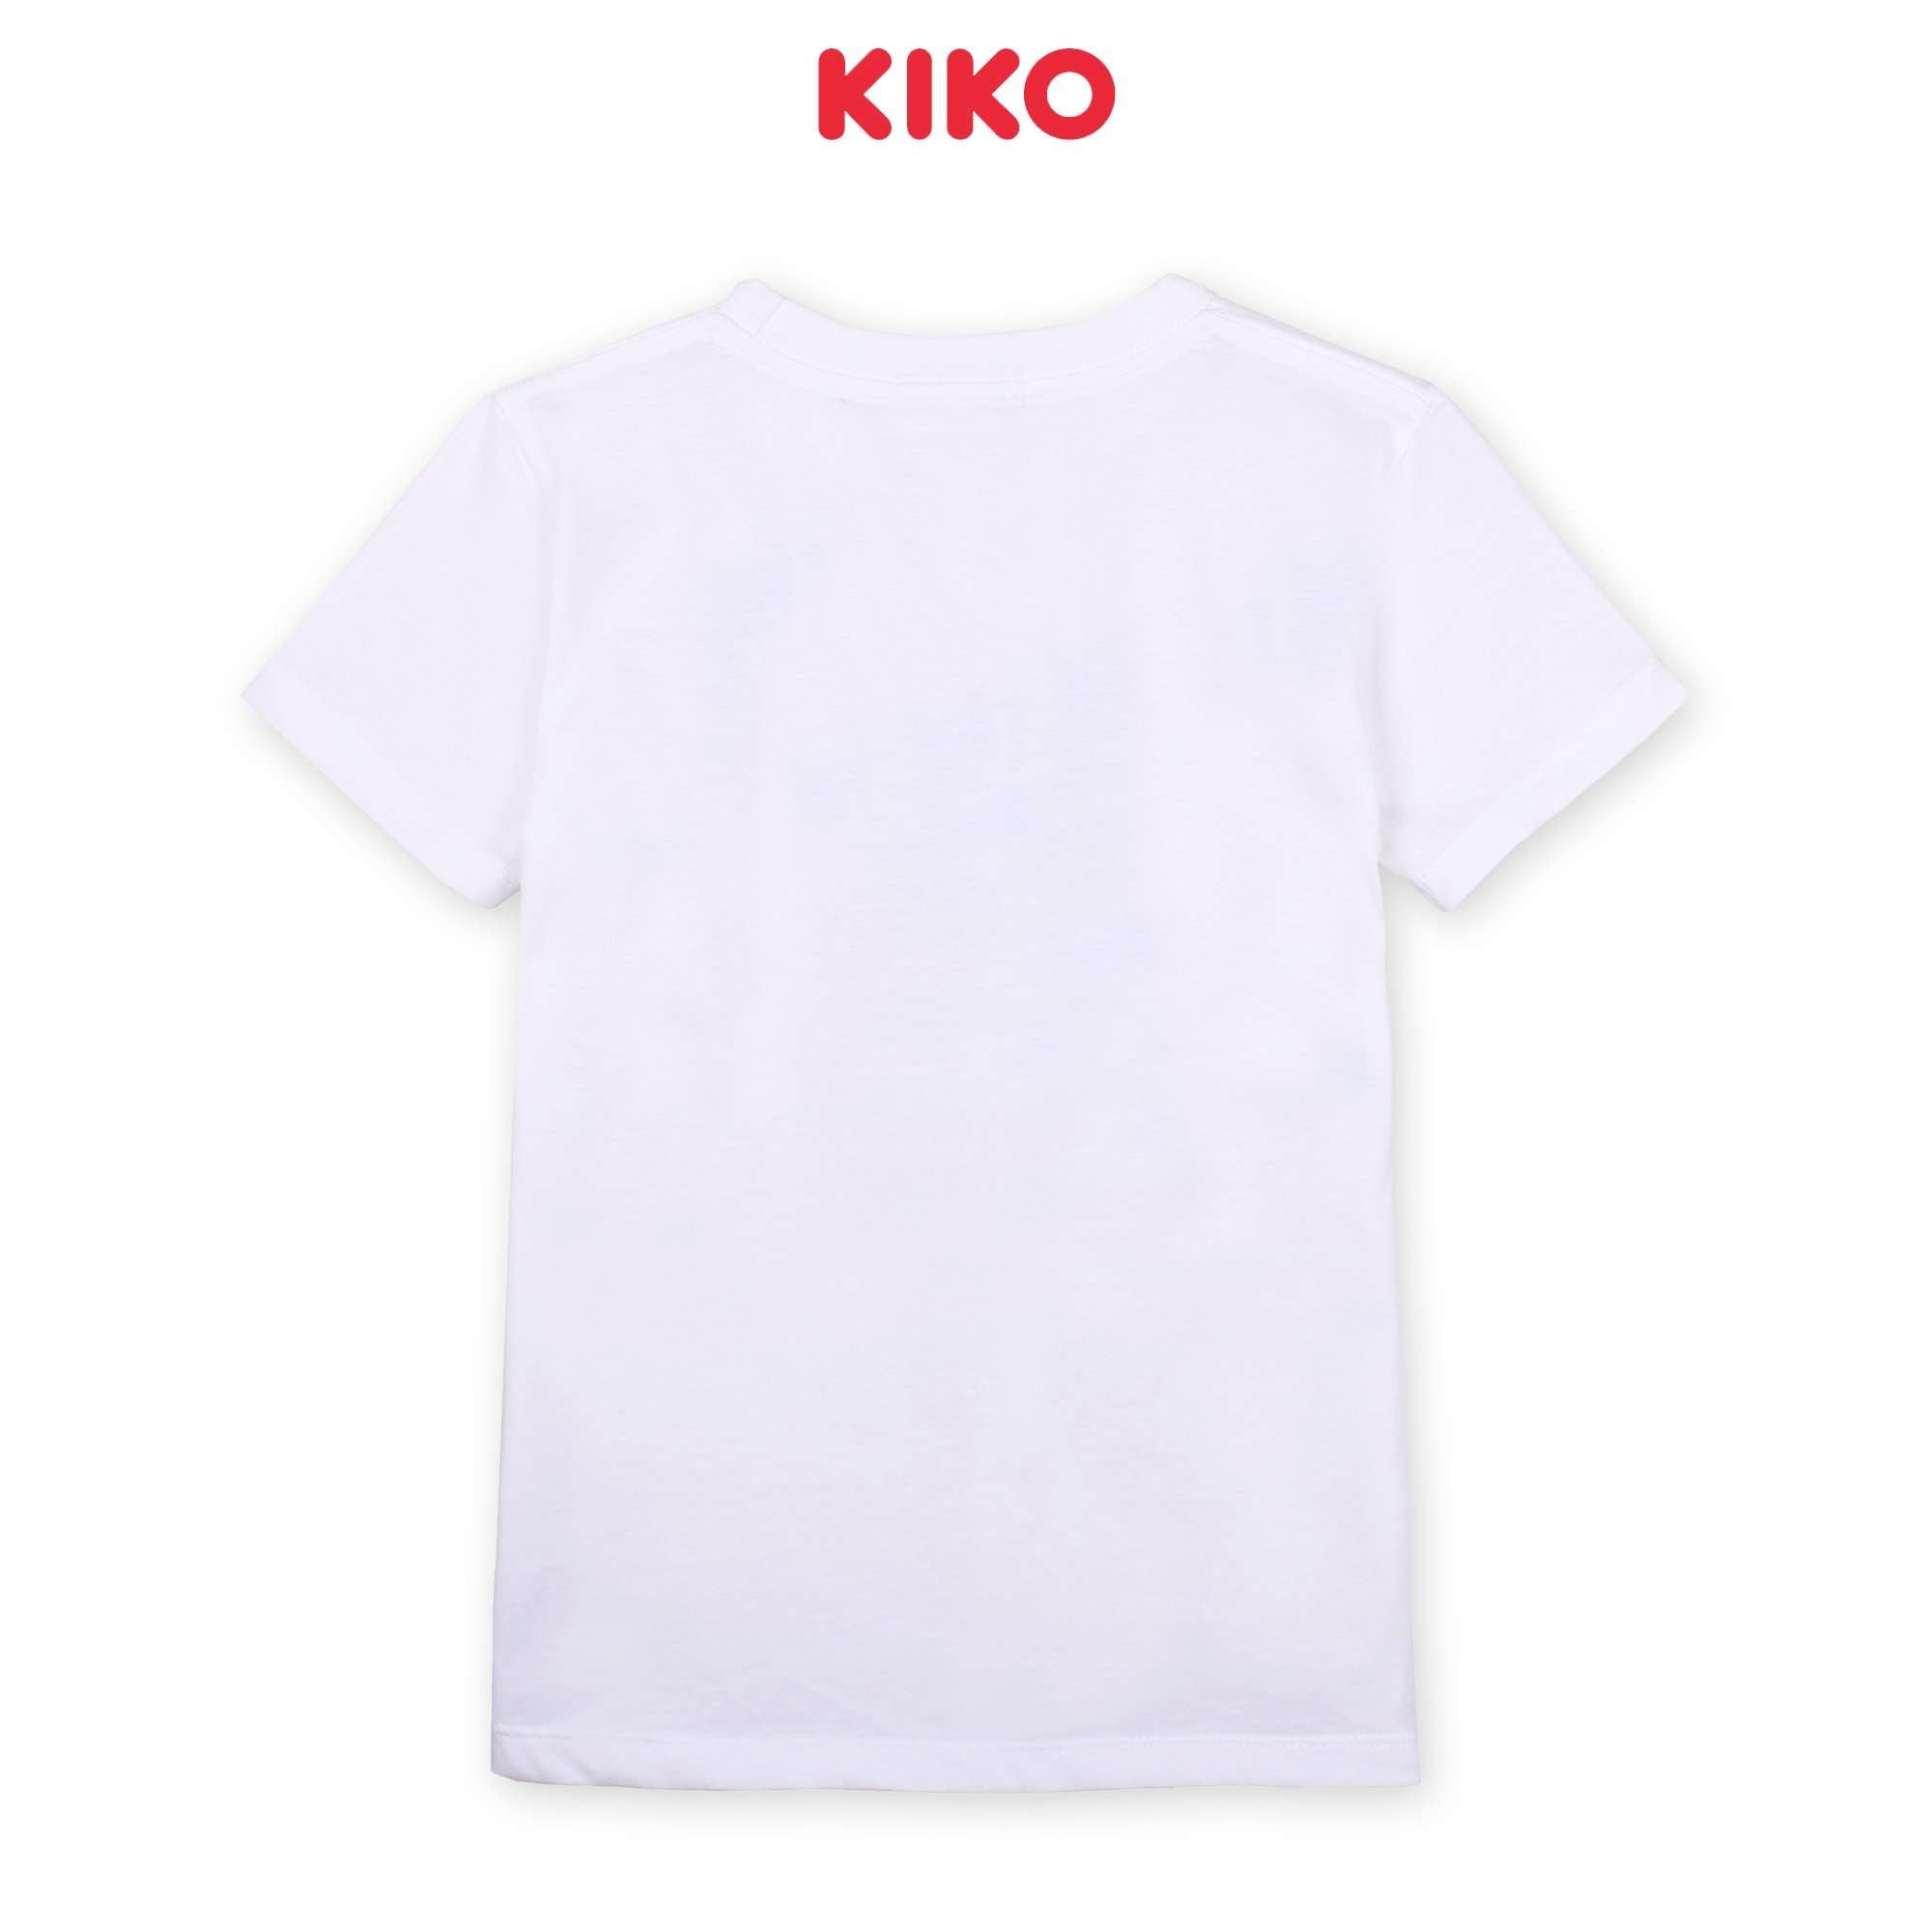 KIKO Boy Short Sleeve Tee - Cream  K923103-1107-W5 : Buy KIKO online at CMG.MY